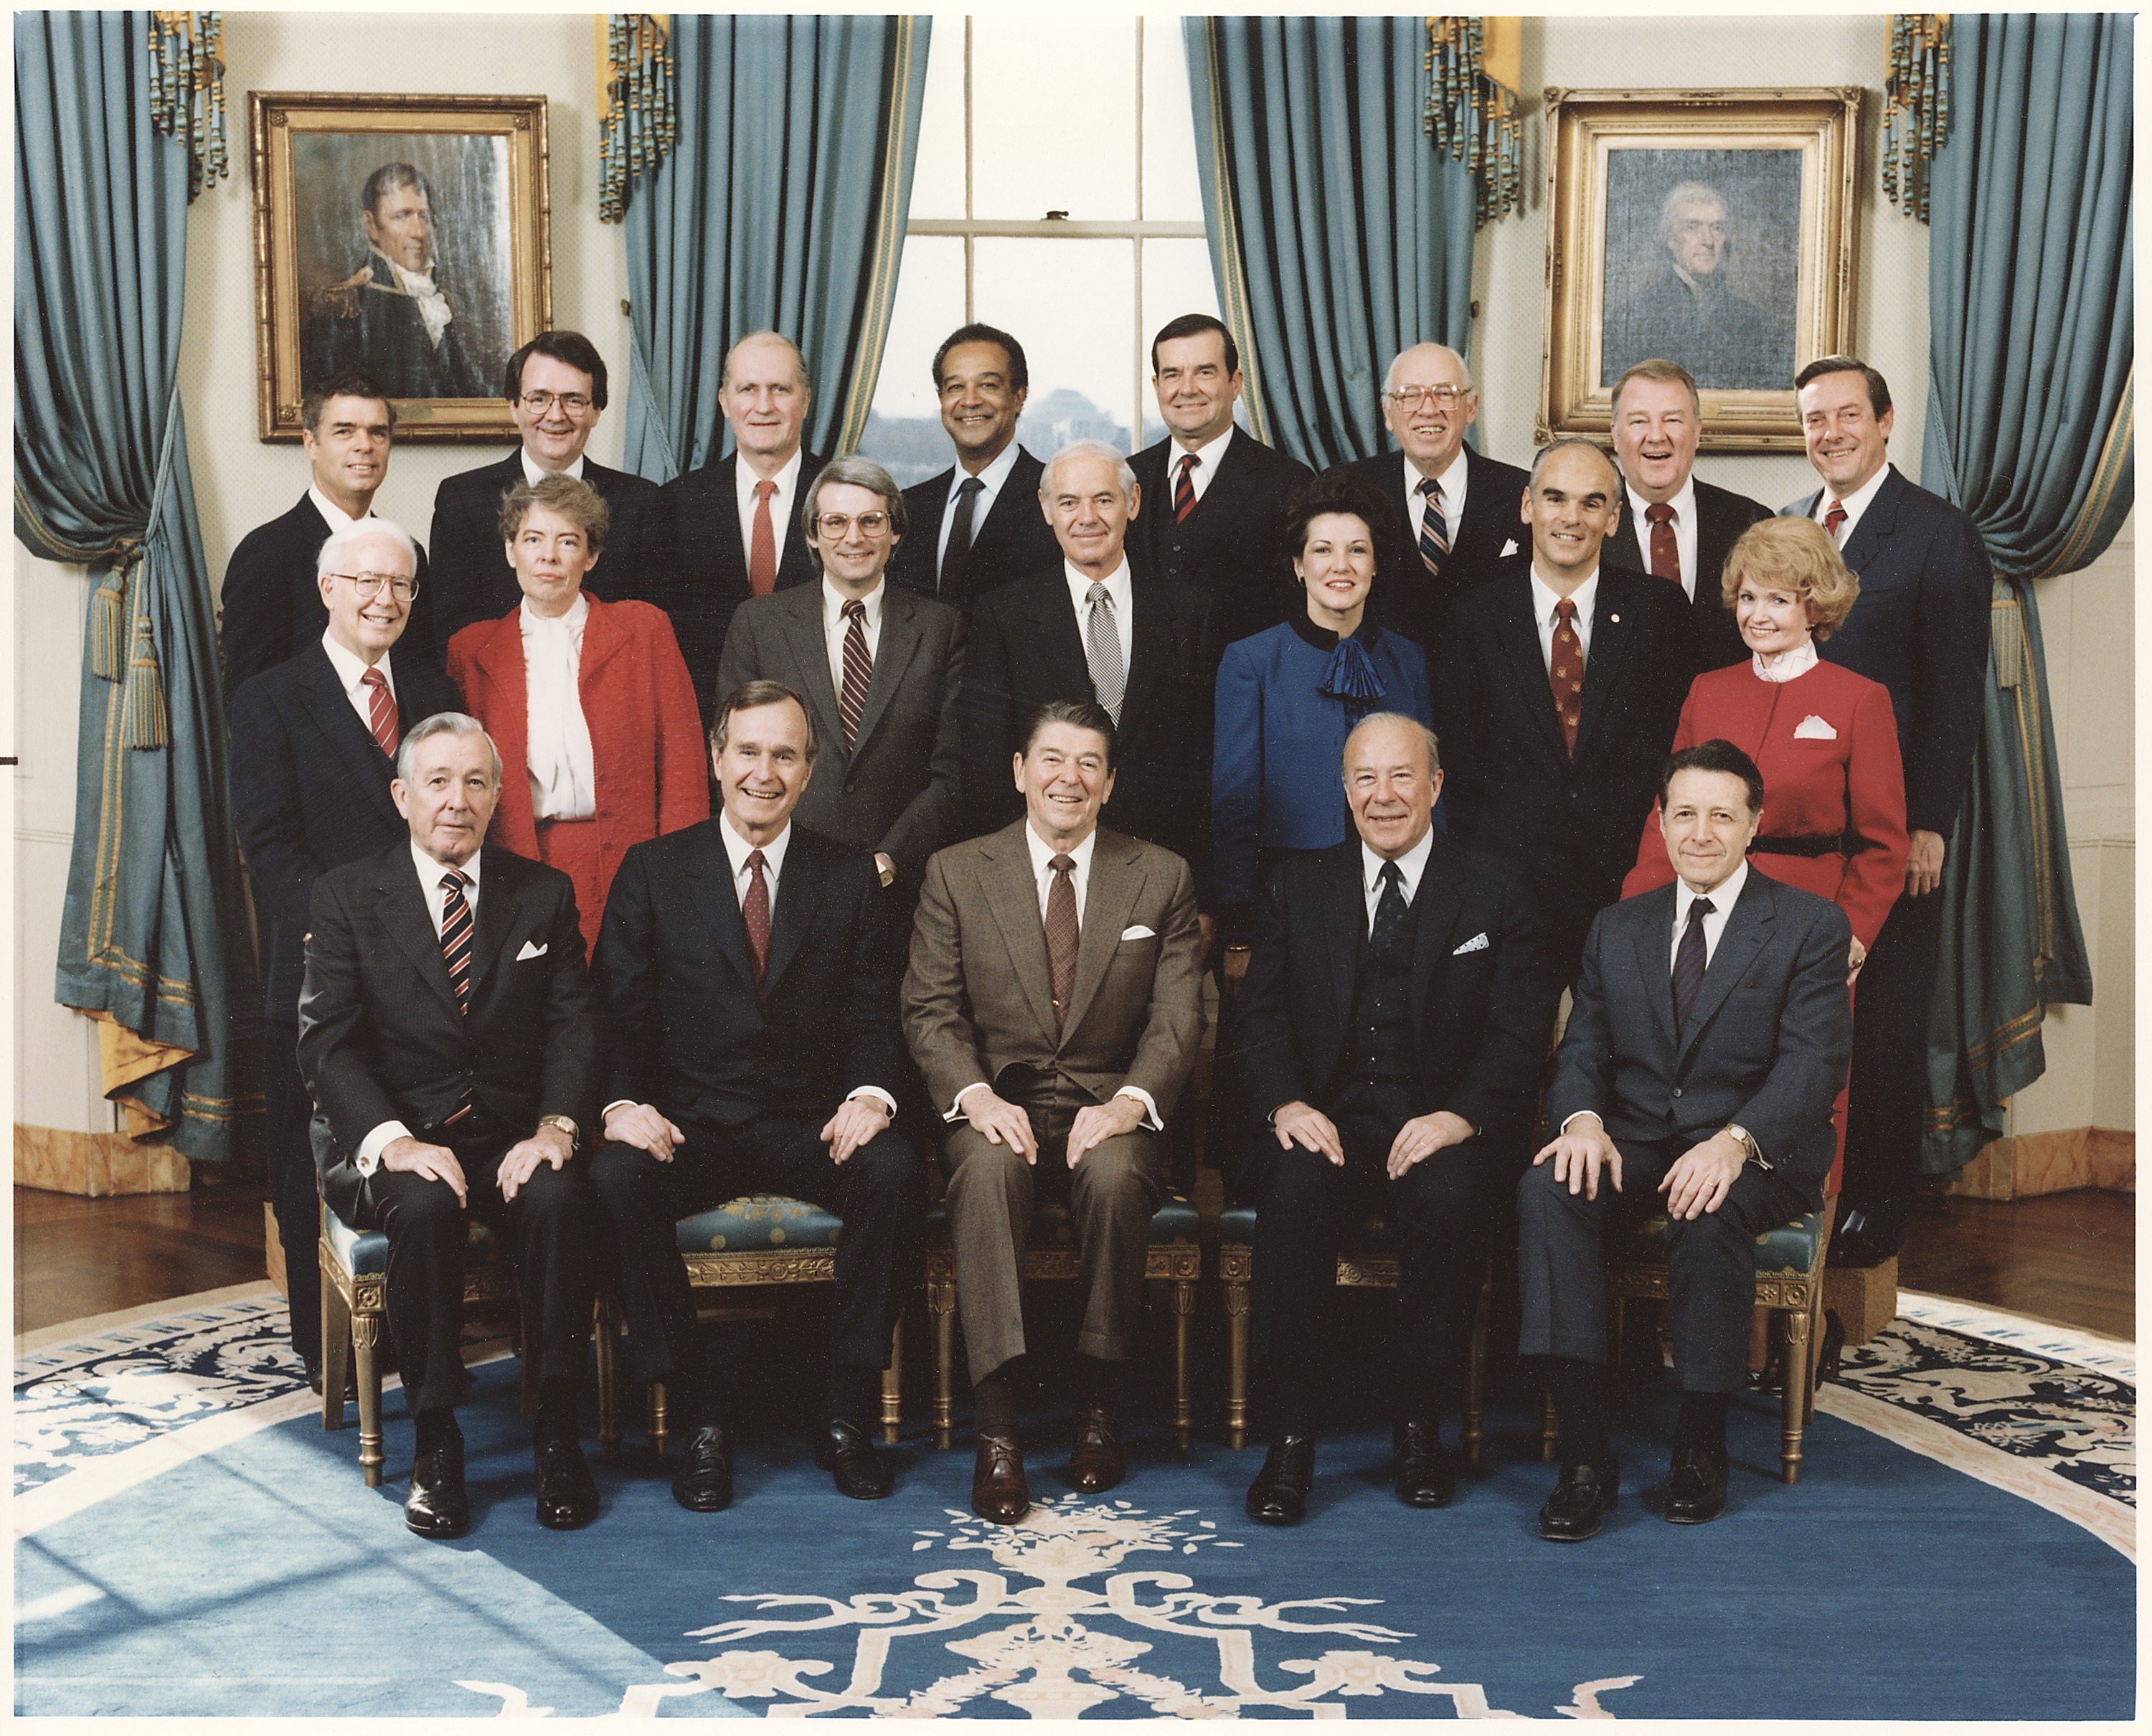 Cabinet Members During Clinton Administration - azontreasures.com